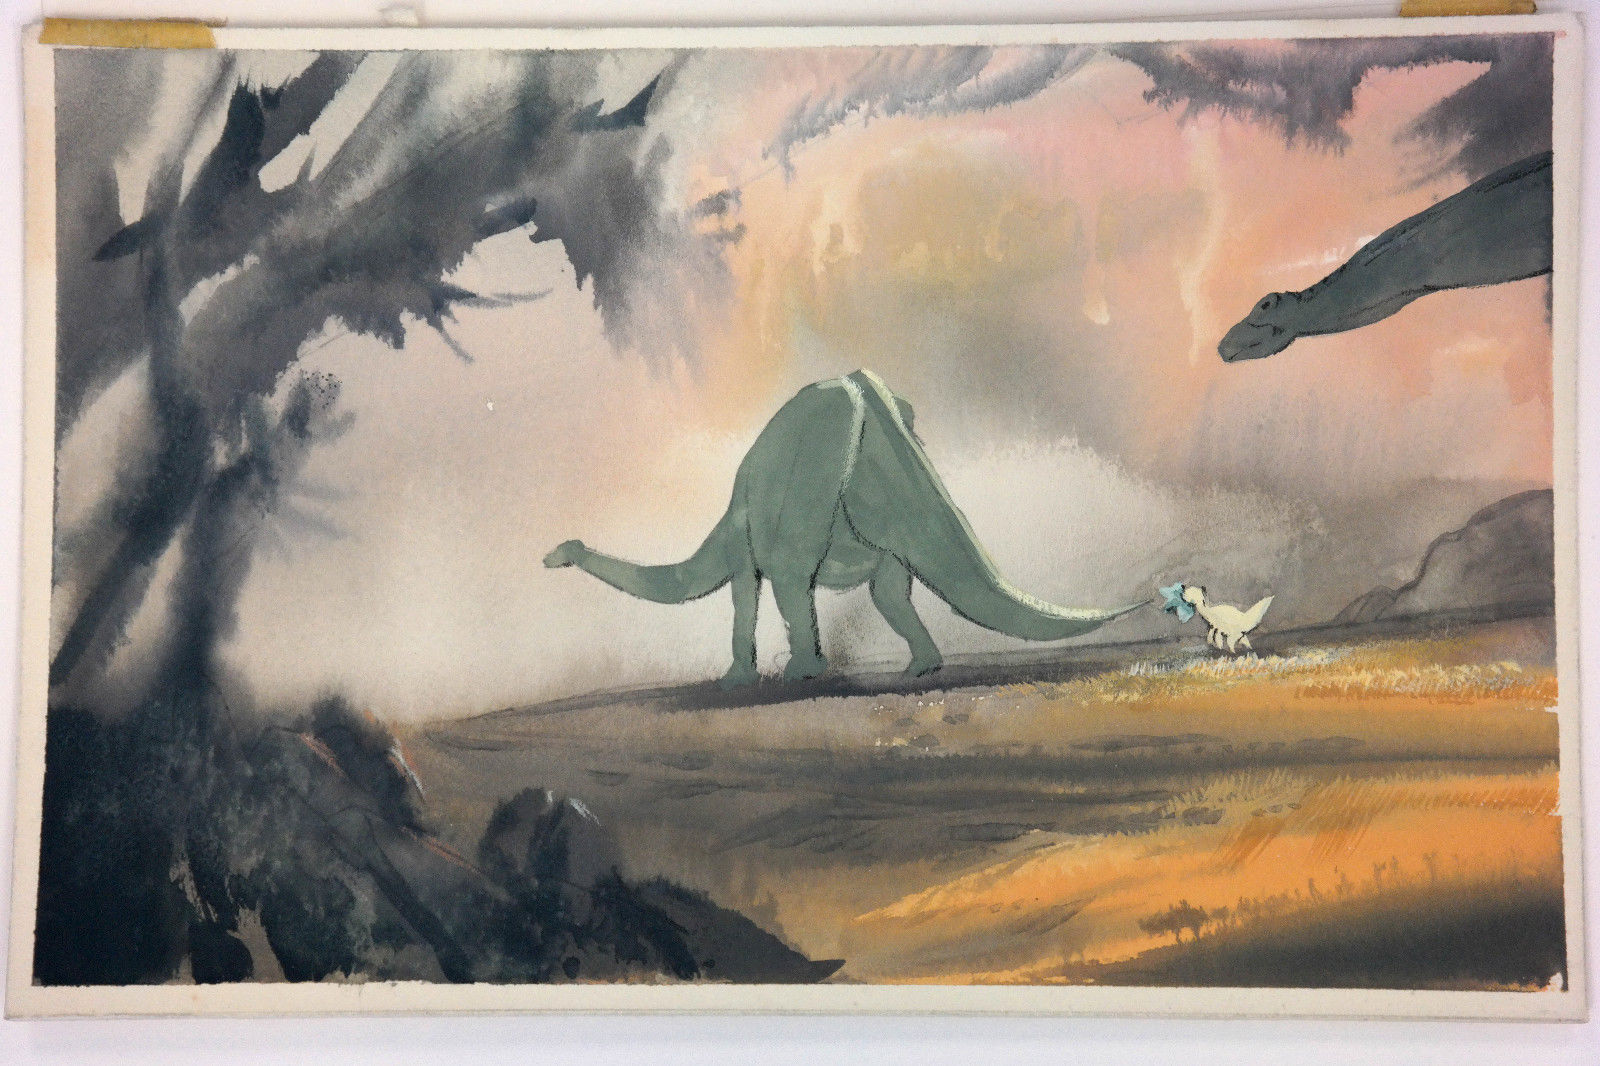 Land_Before_Time_COLOR_KEY_CONCEPT_Don_Bluth_Production_Art_LITTLEFOOT_CERA_rare.jpg